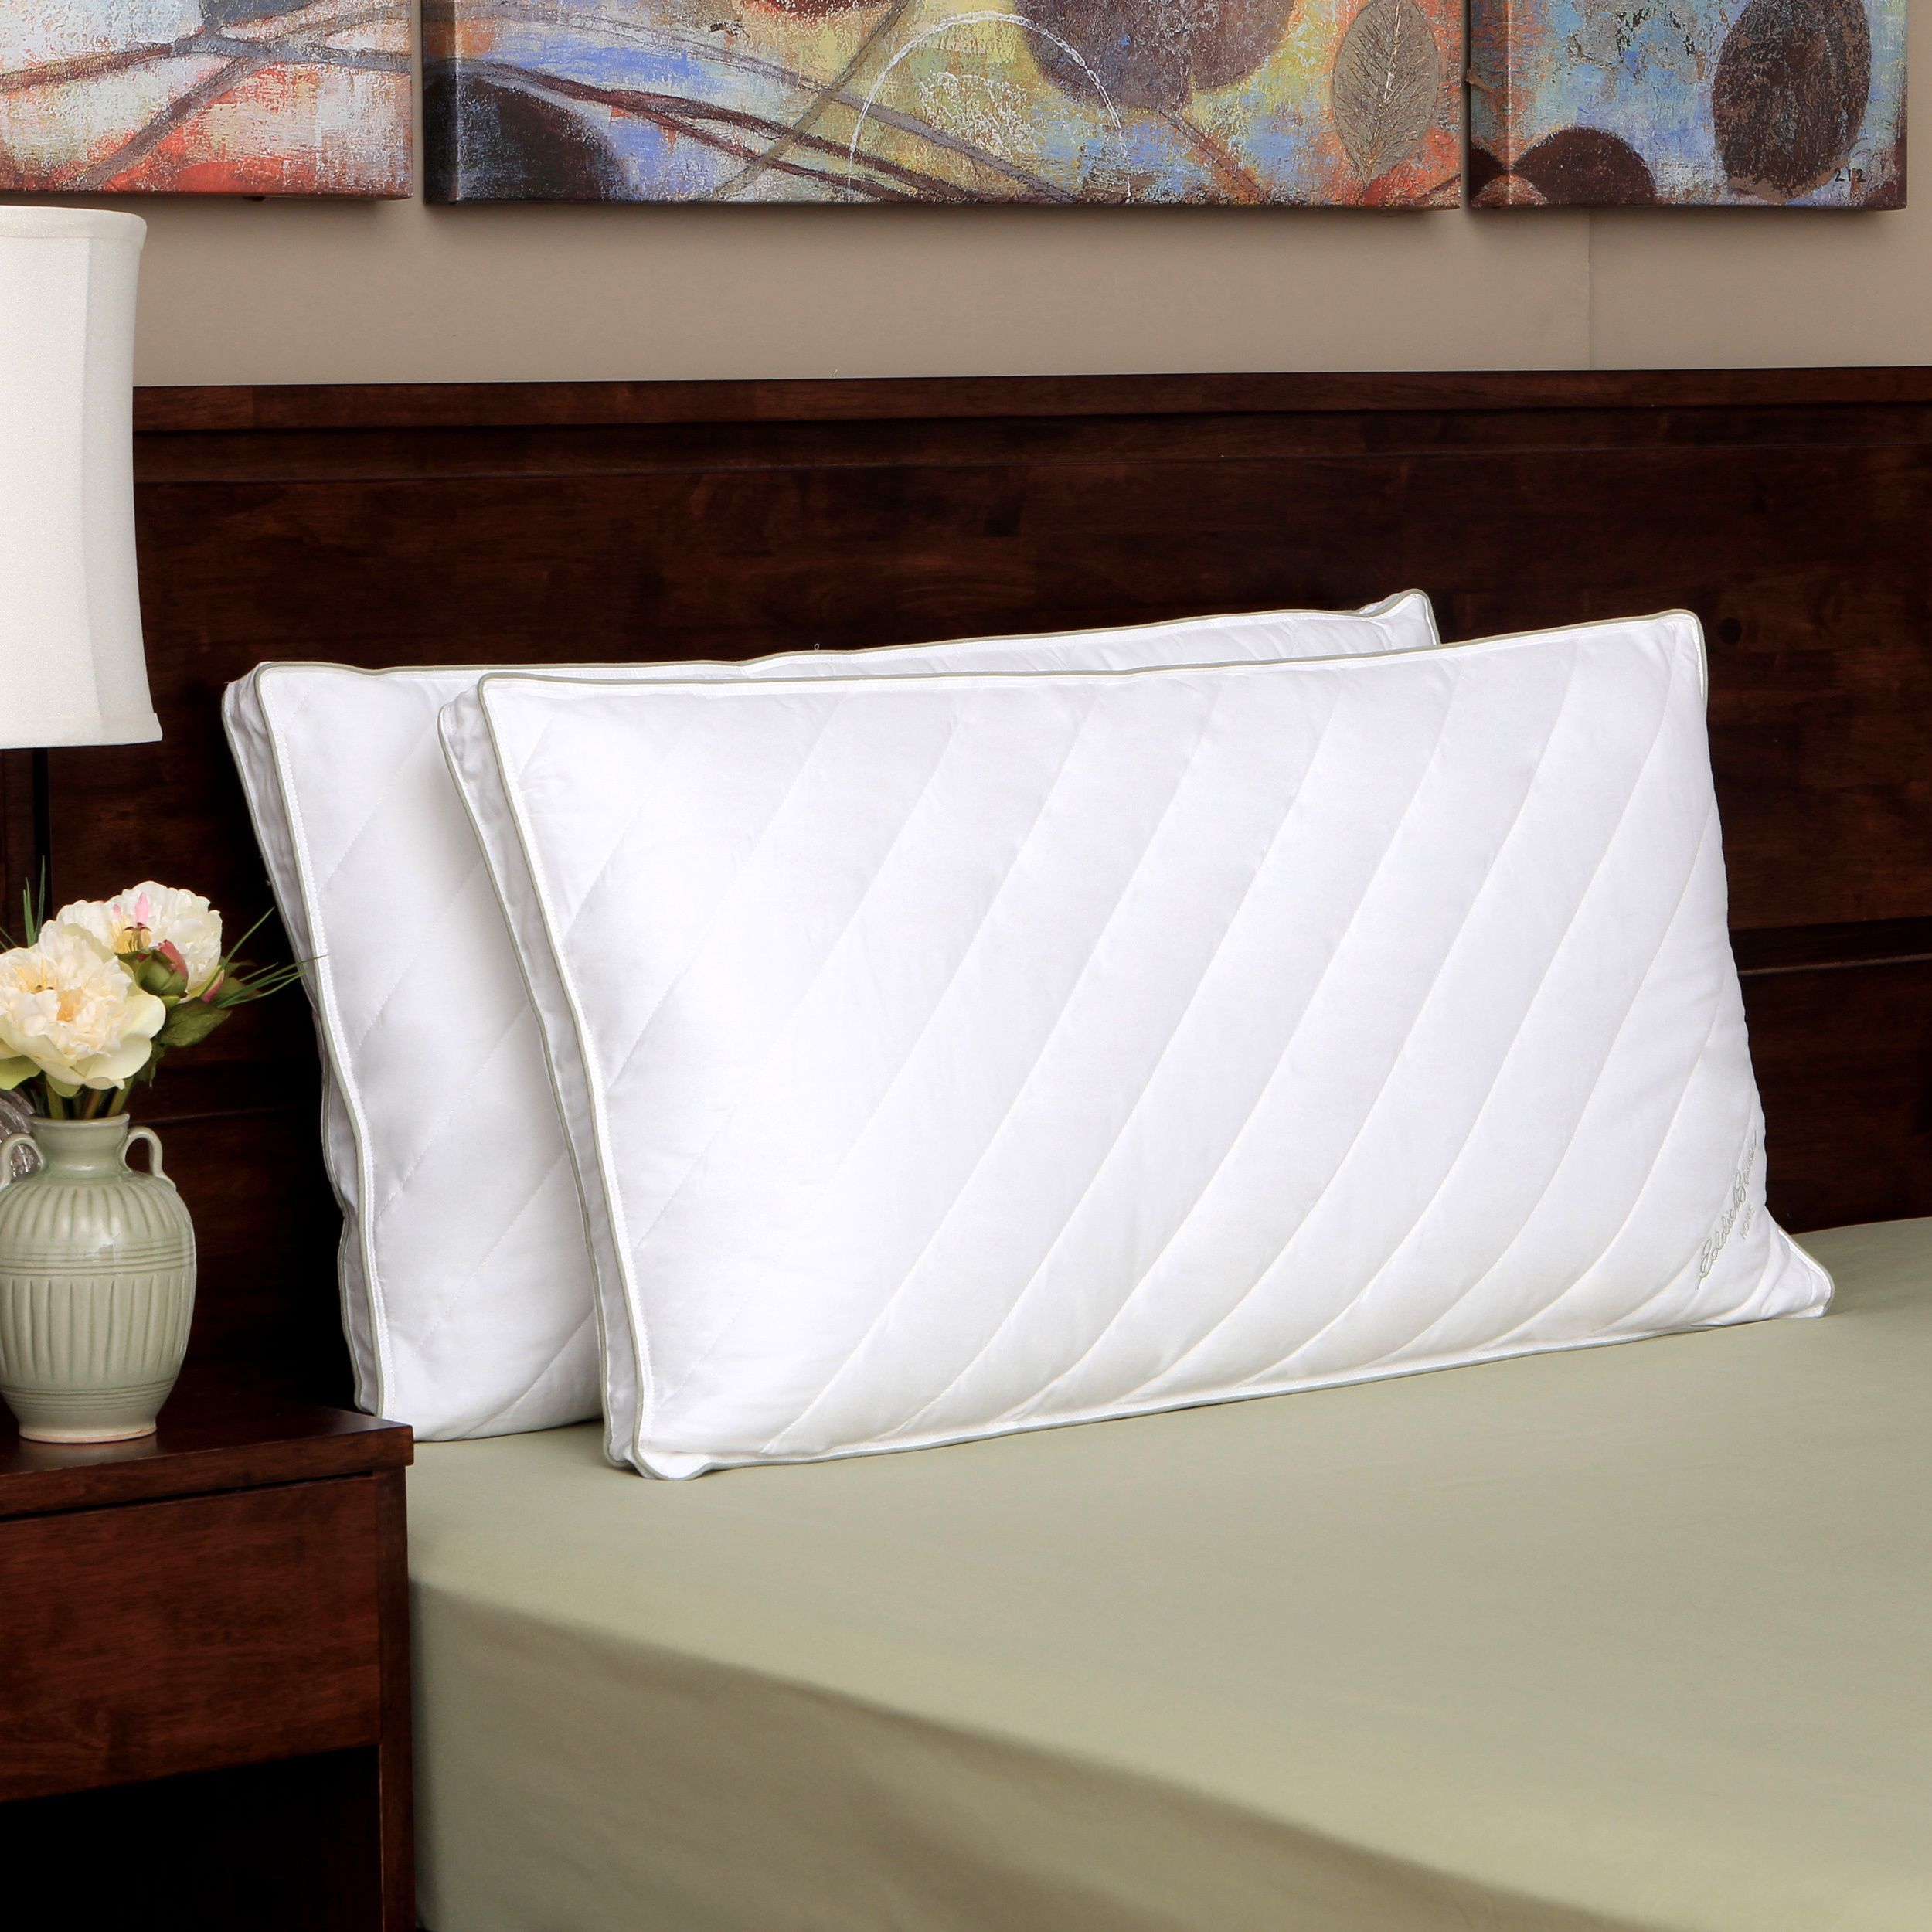 The Ed Bauer medium density quilted down alternative pillow gives